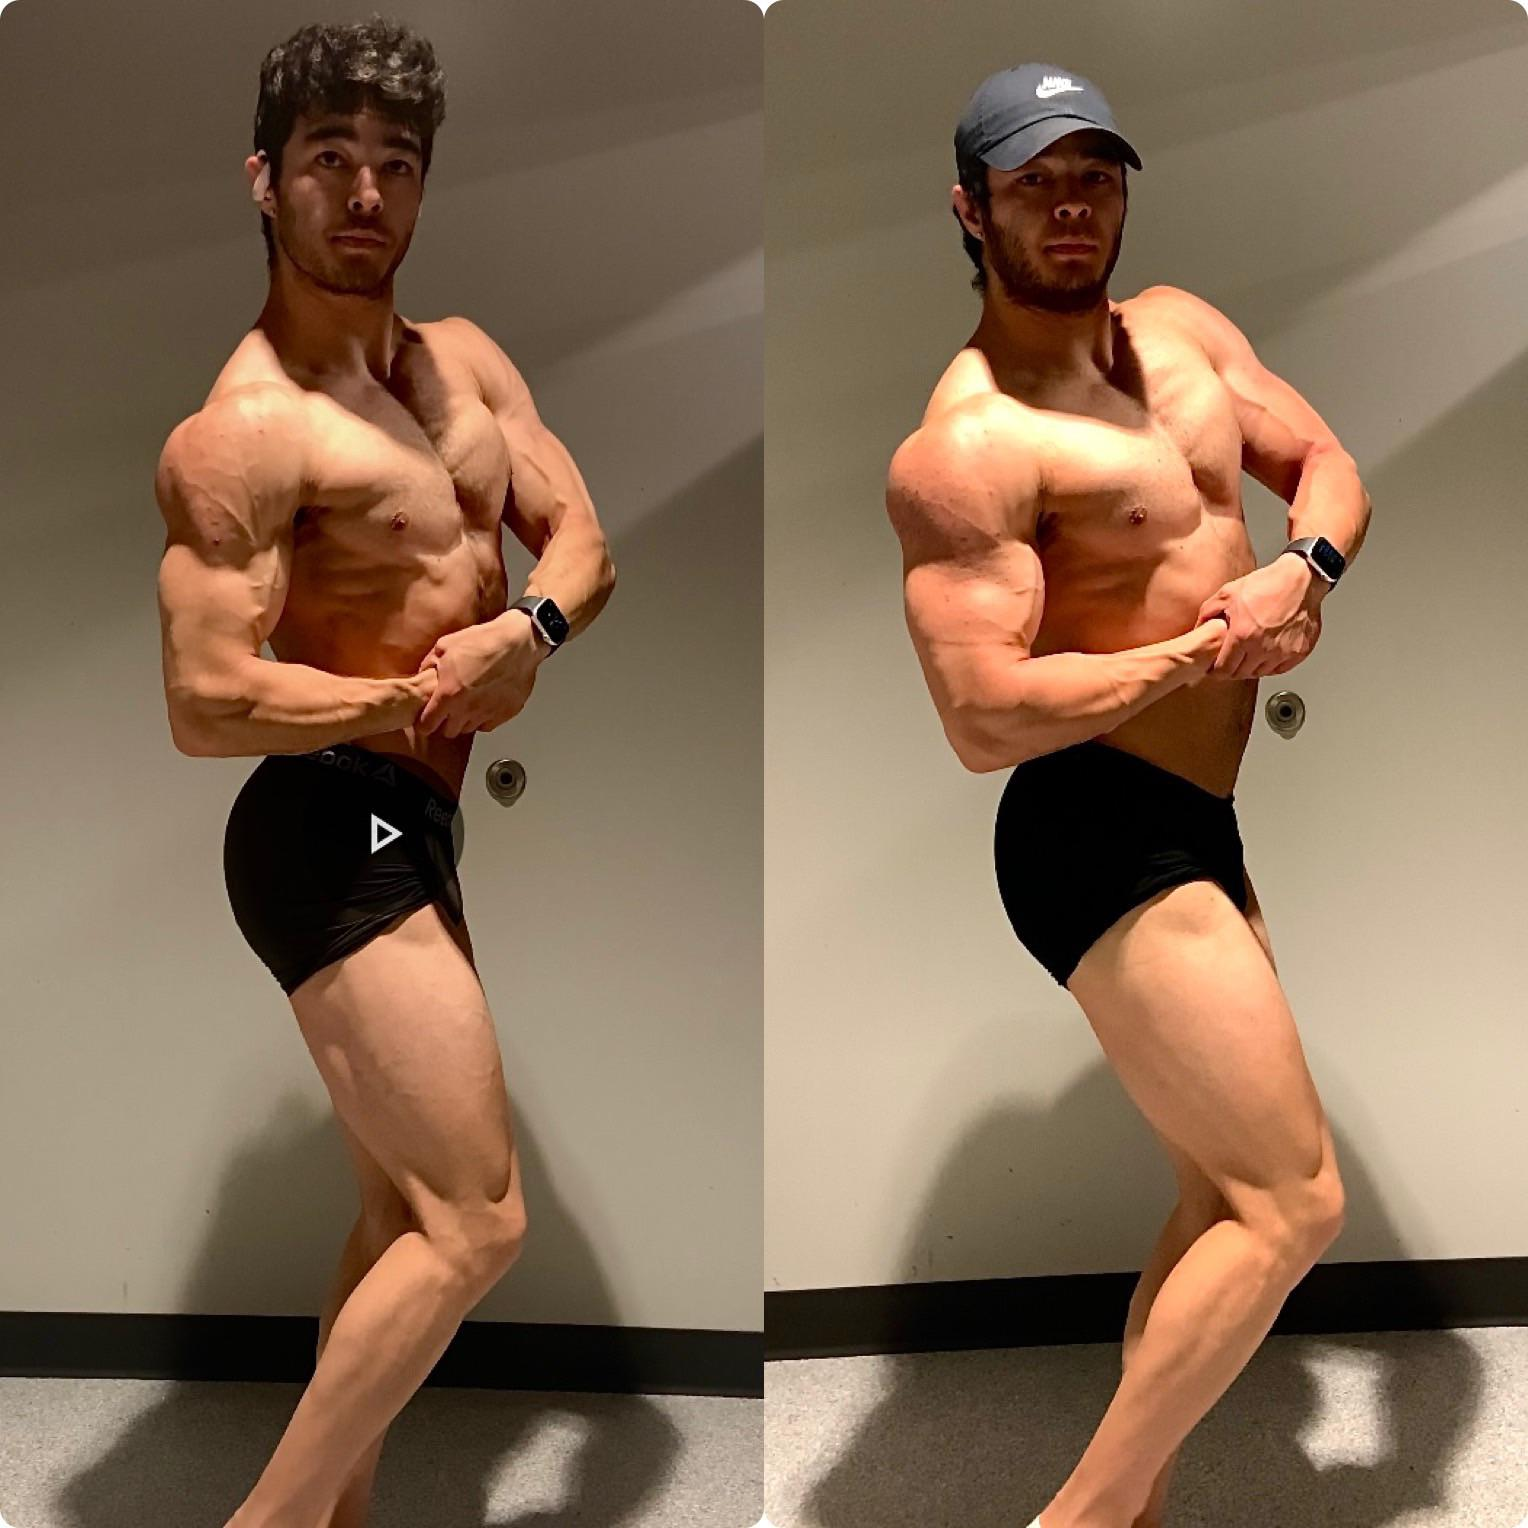 20 lbs Muscle Gain Before and After 5 foot 10 Male 165 lbs to 185 lbs